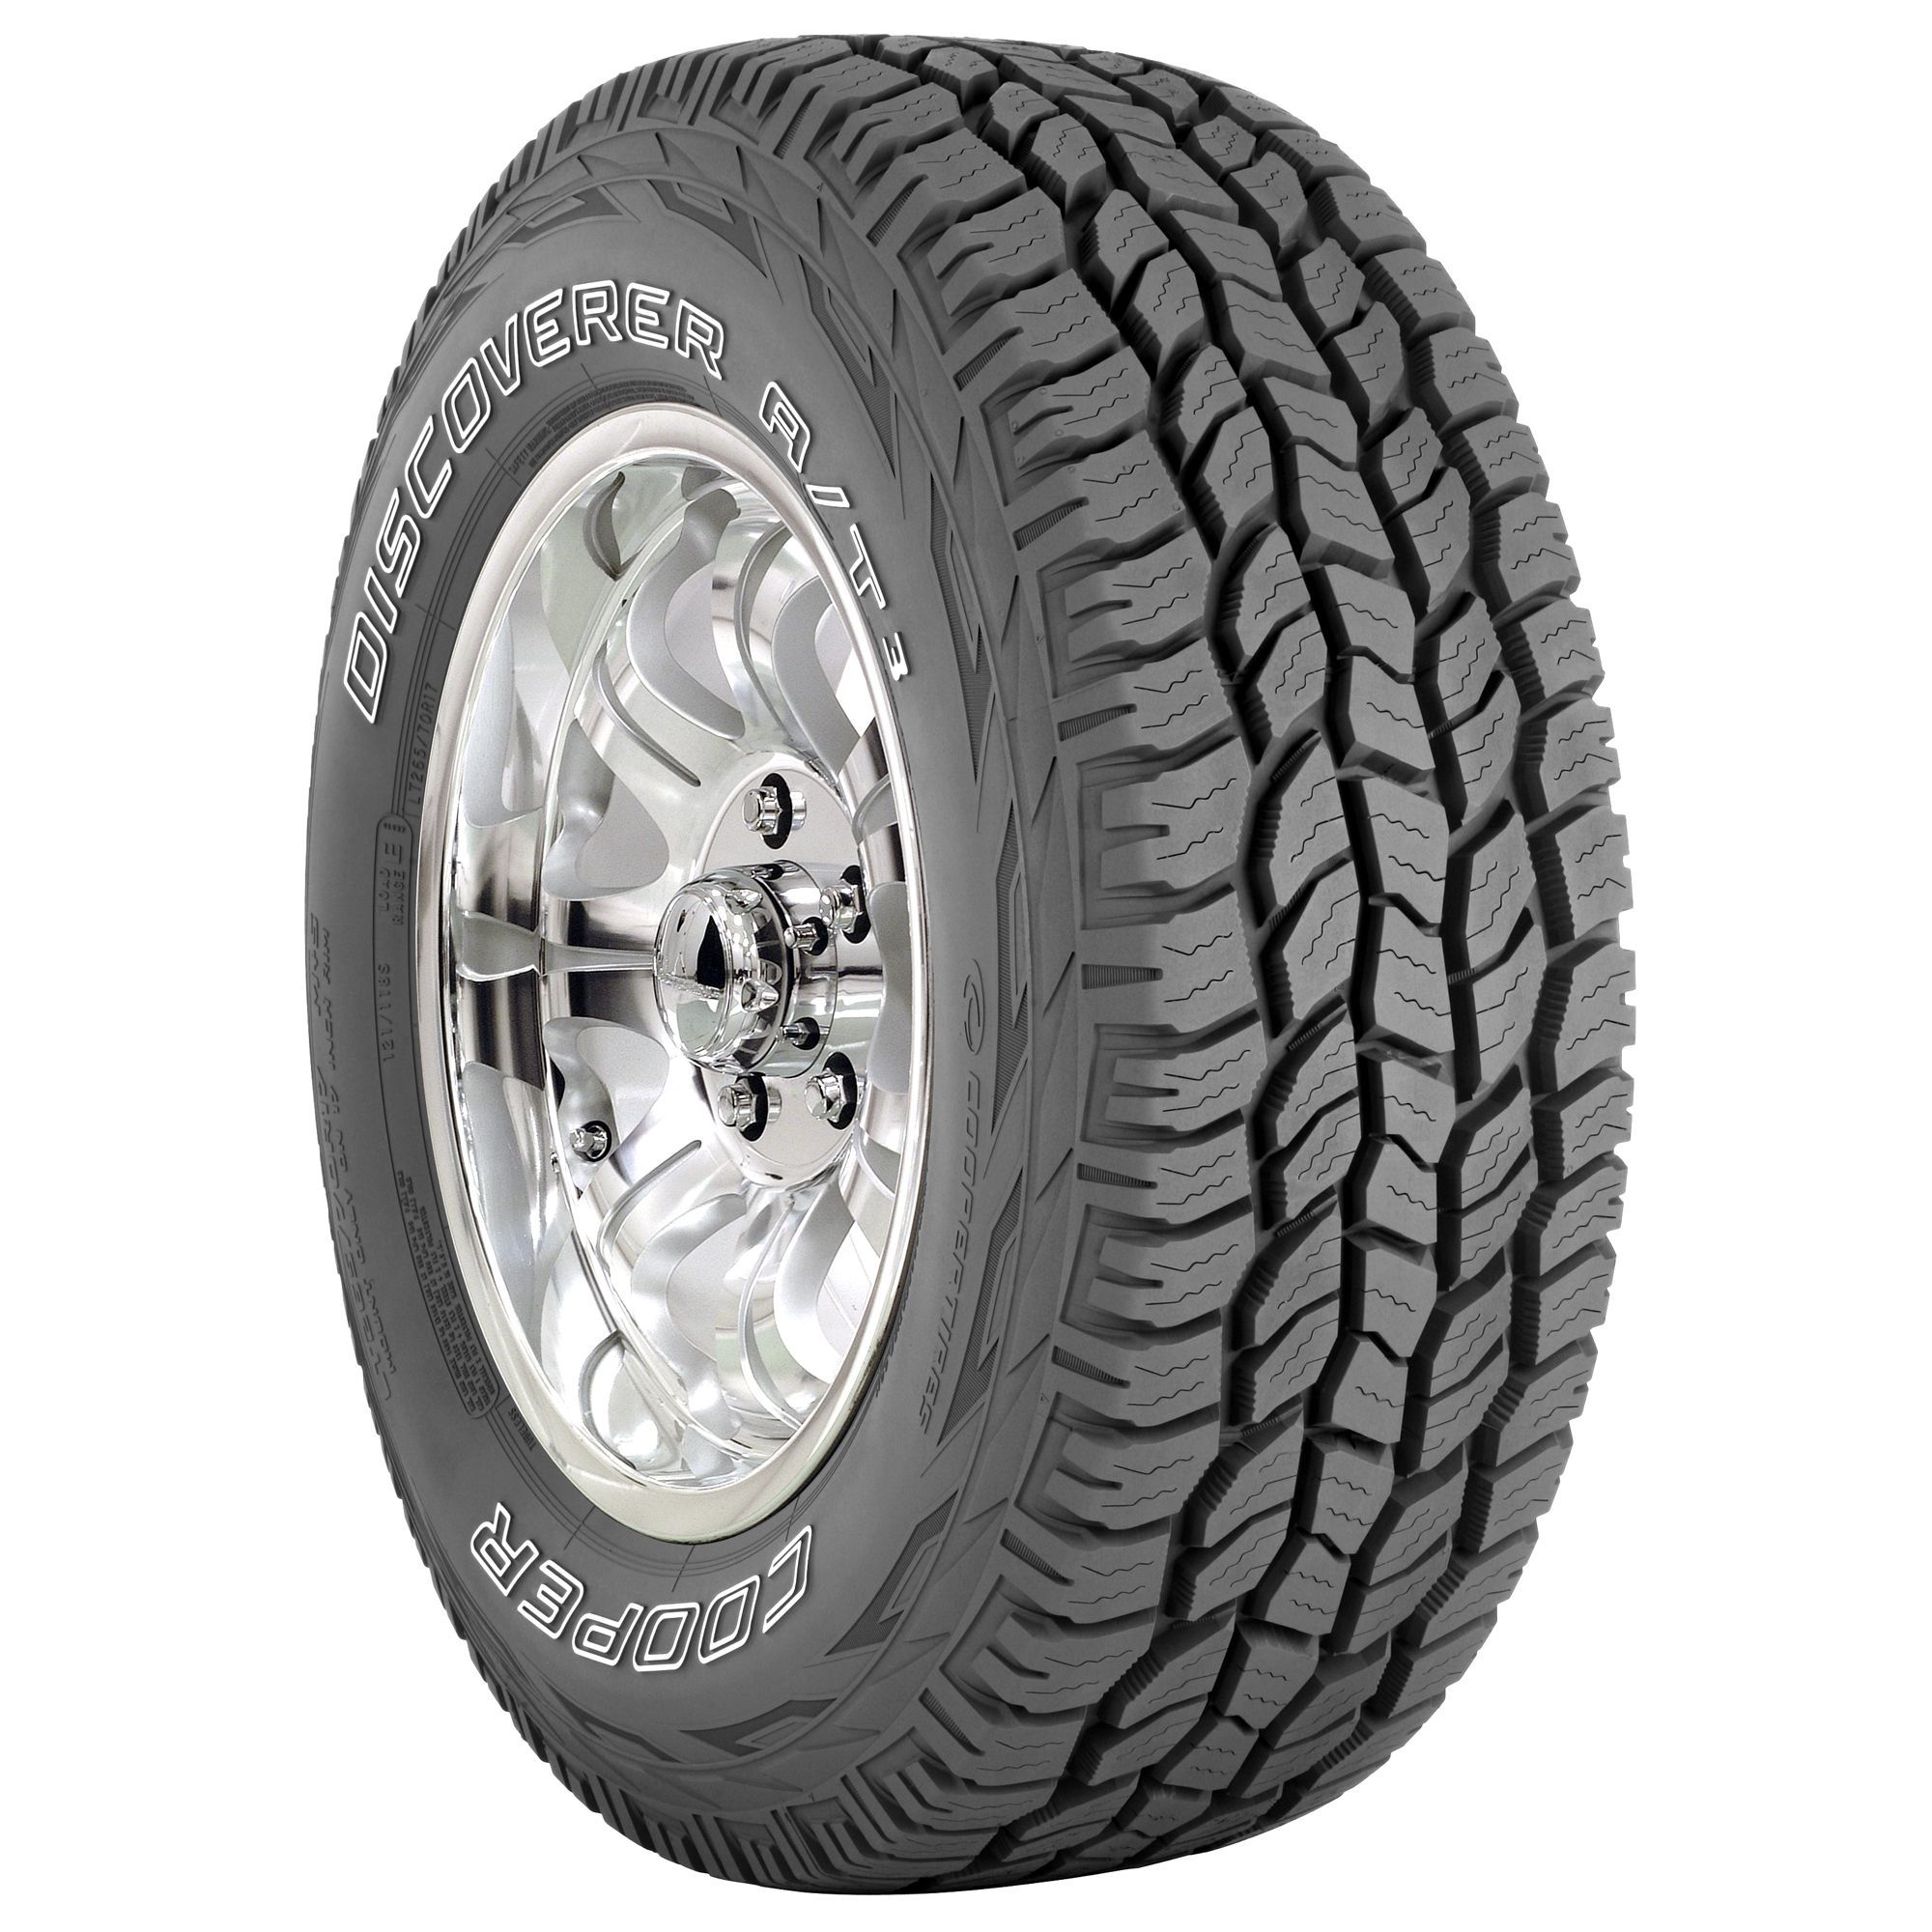 Cooper S Discoverer A T3 265 70r17 115t Tire Is All Traction All Terrain All The Time Cooper Discoverer Cooper Tires Automotive Tires